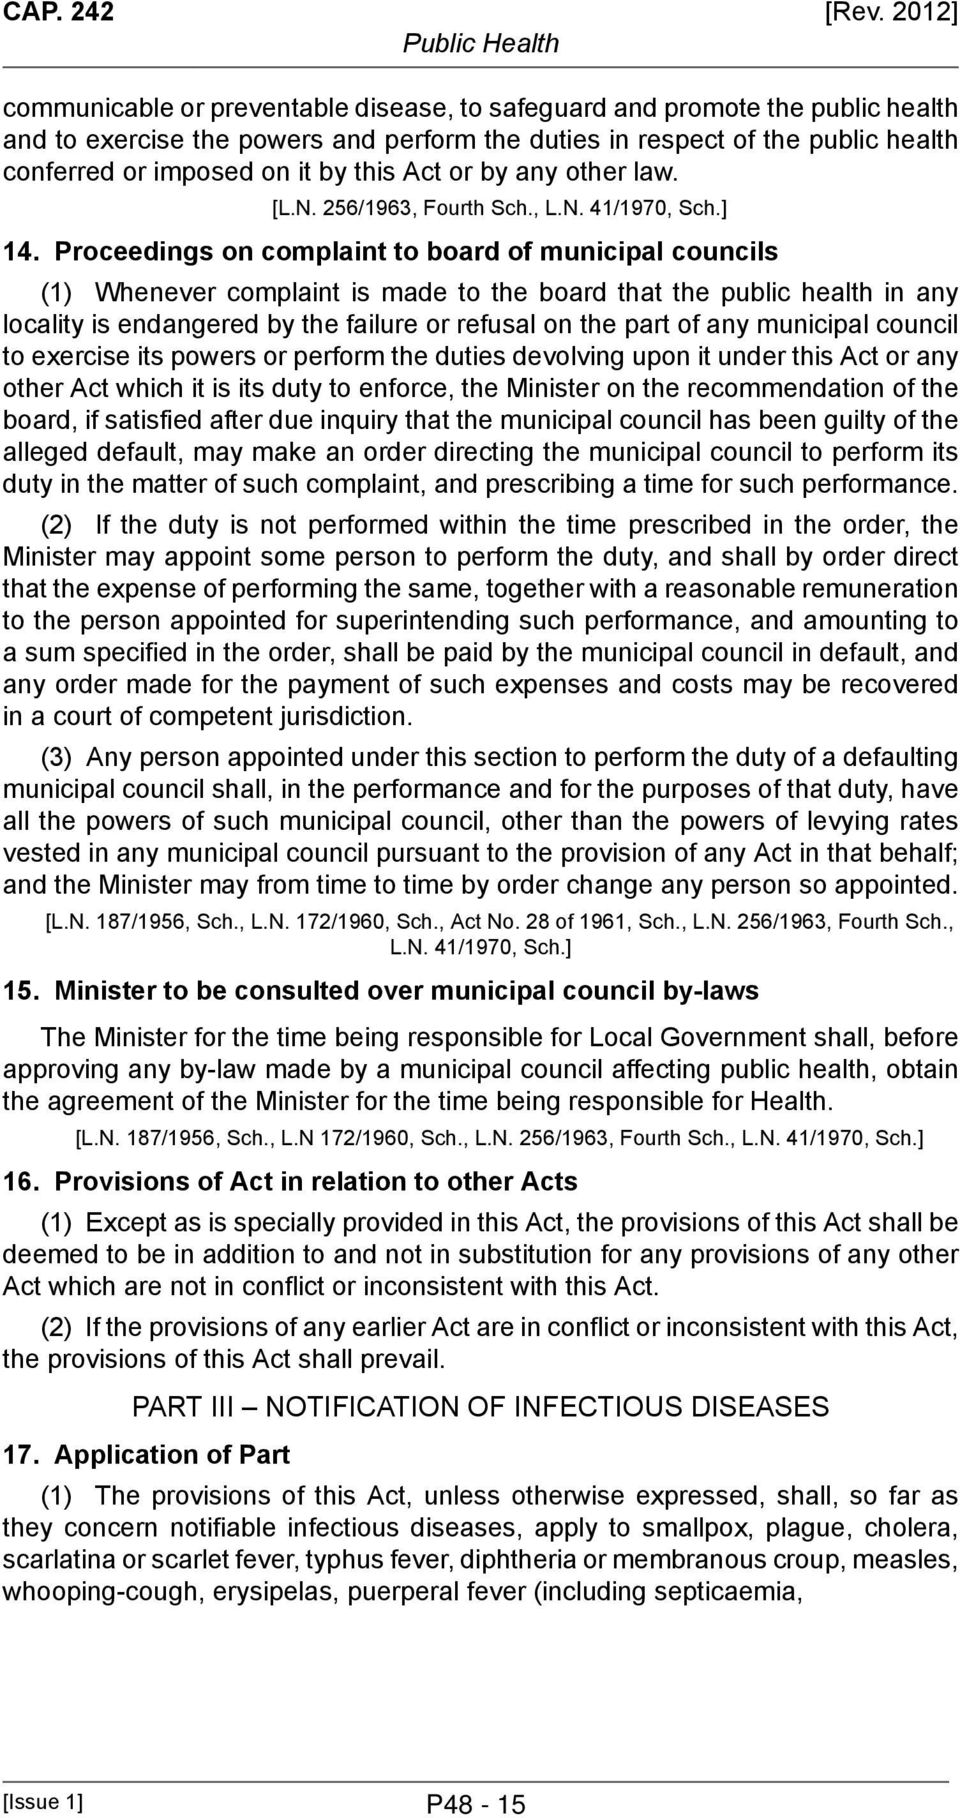 this Act or by any other law. [L.N. 256/1963, Fourth Sch., L.N. 41/1970, Sch.] 14.